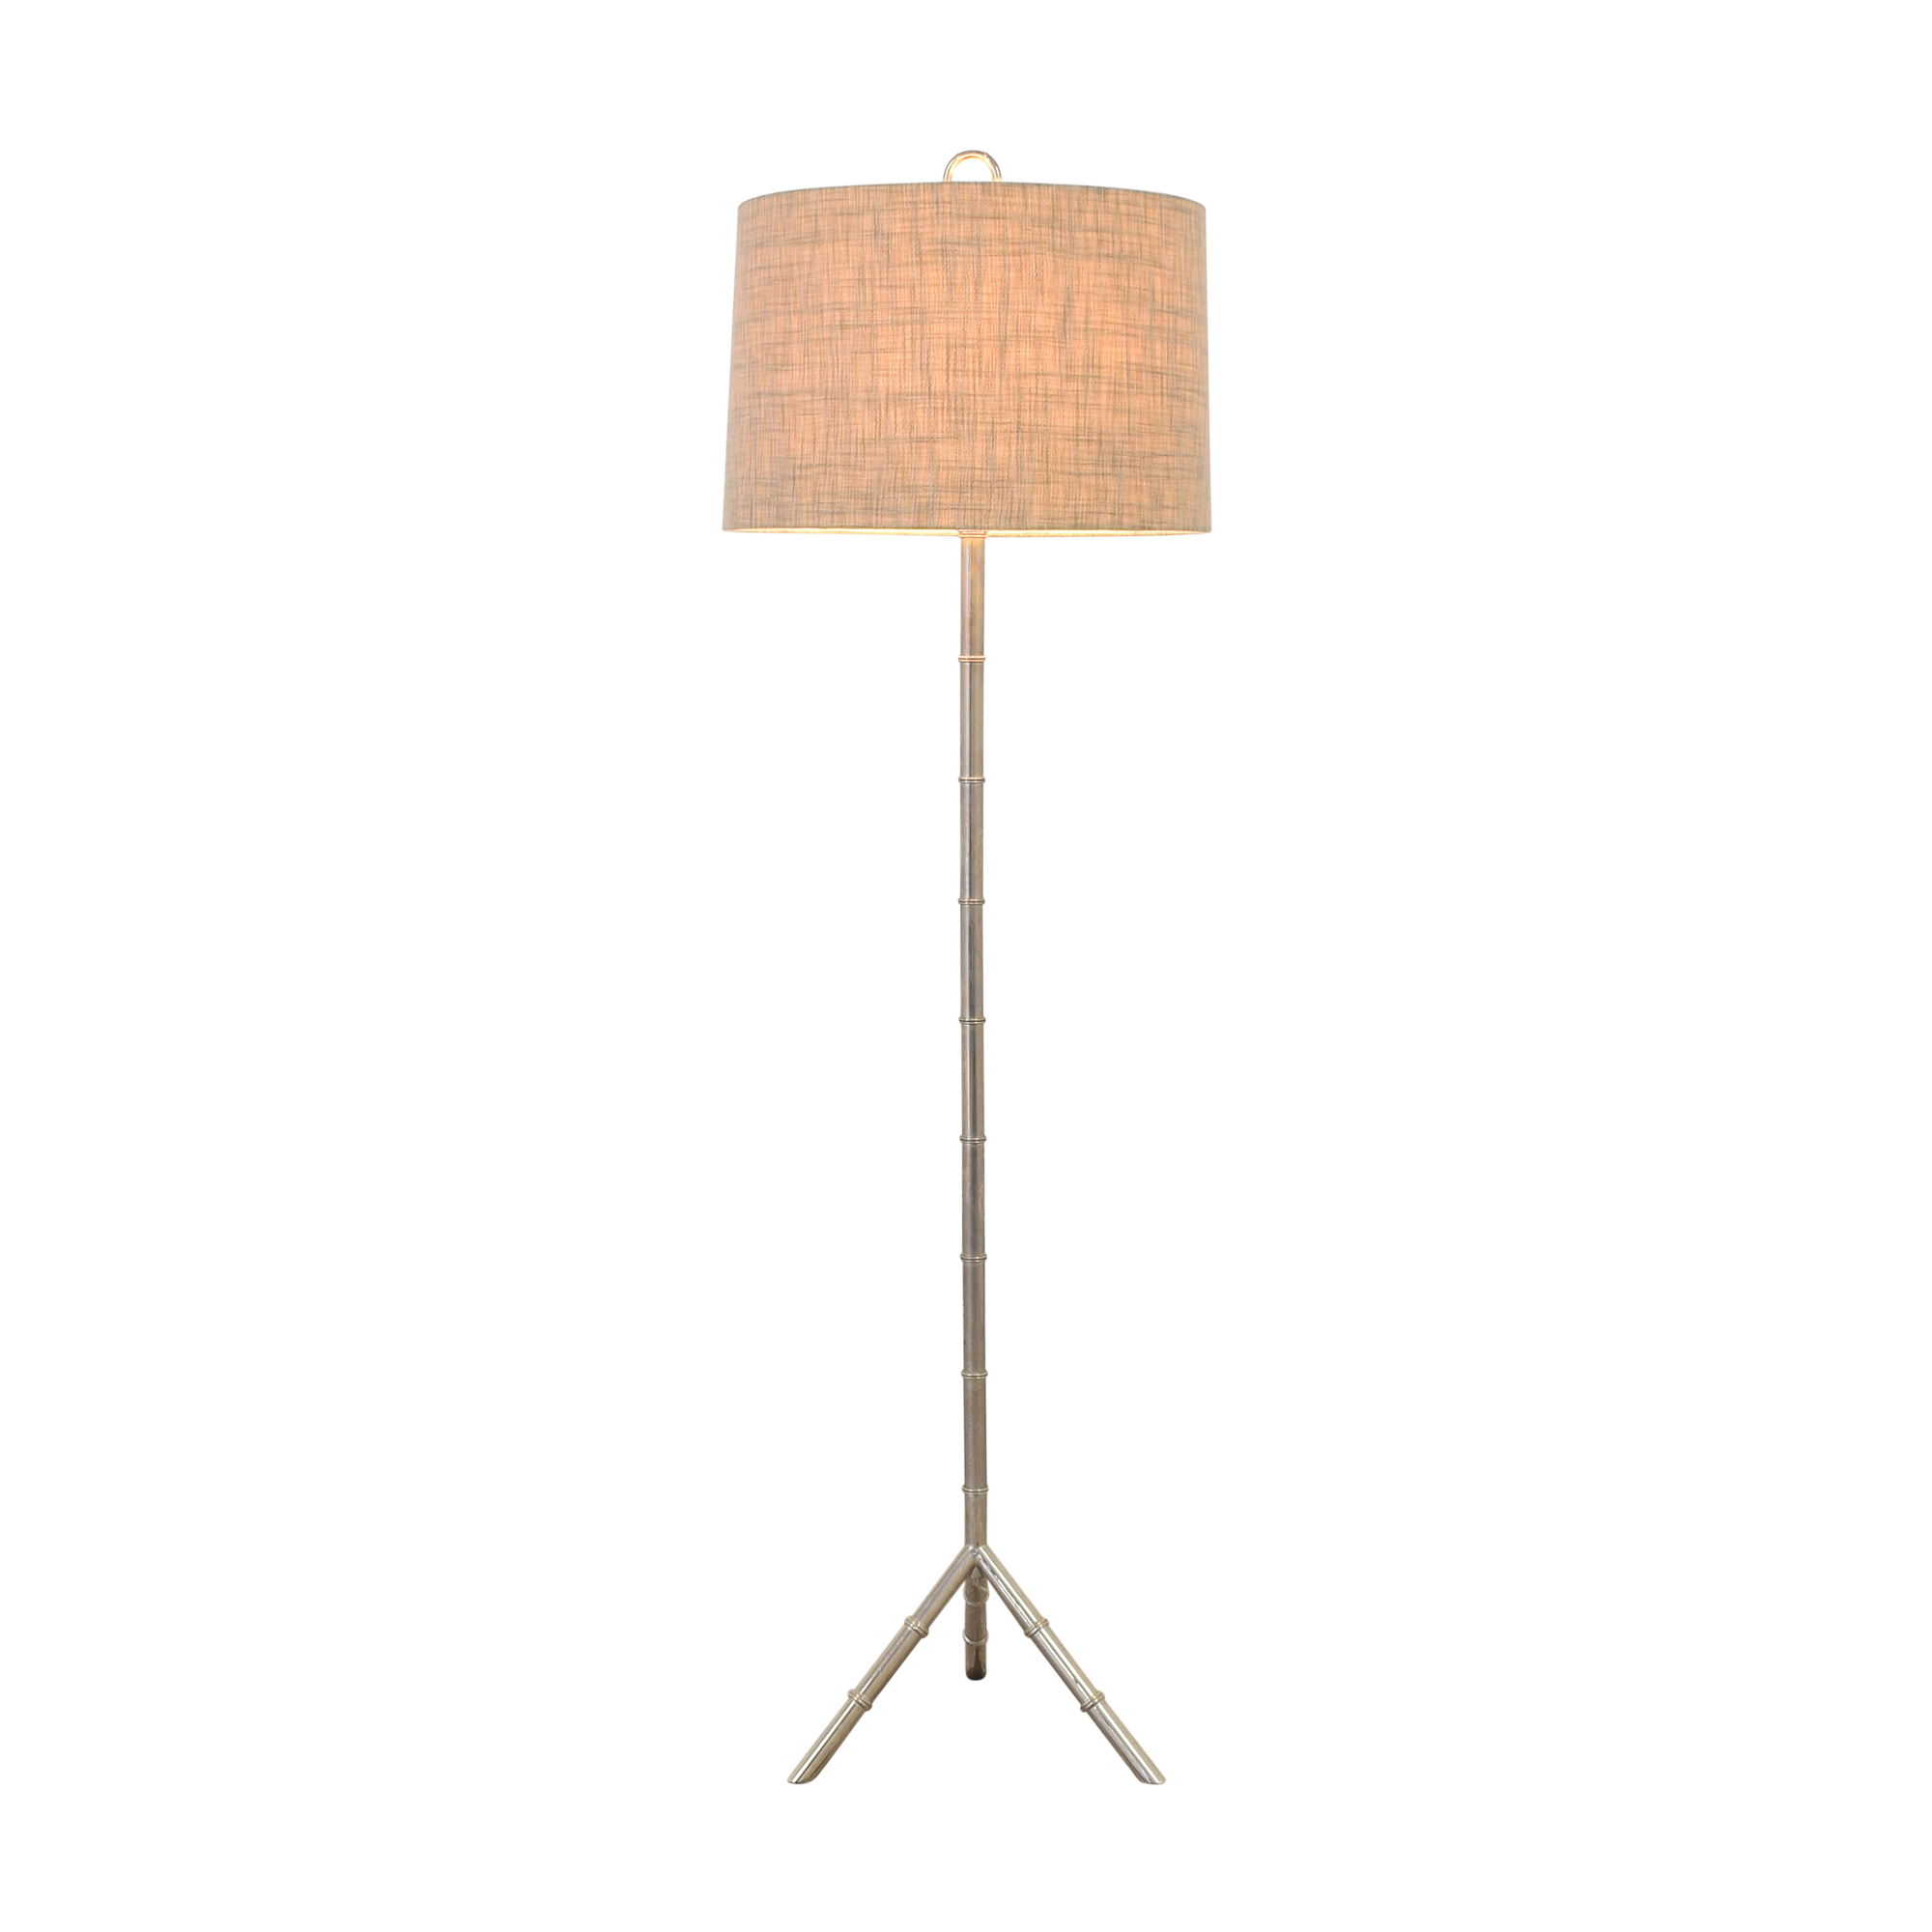 shop Jonathan Adler Meurice Floor Lamp Jonathan Adler Decor